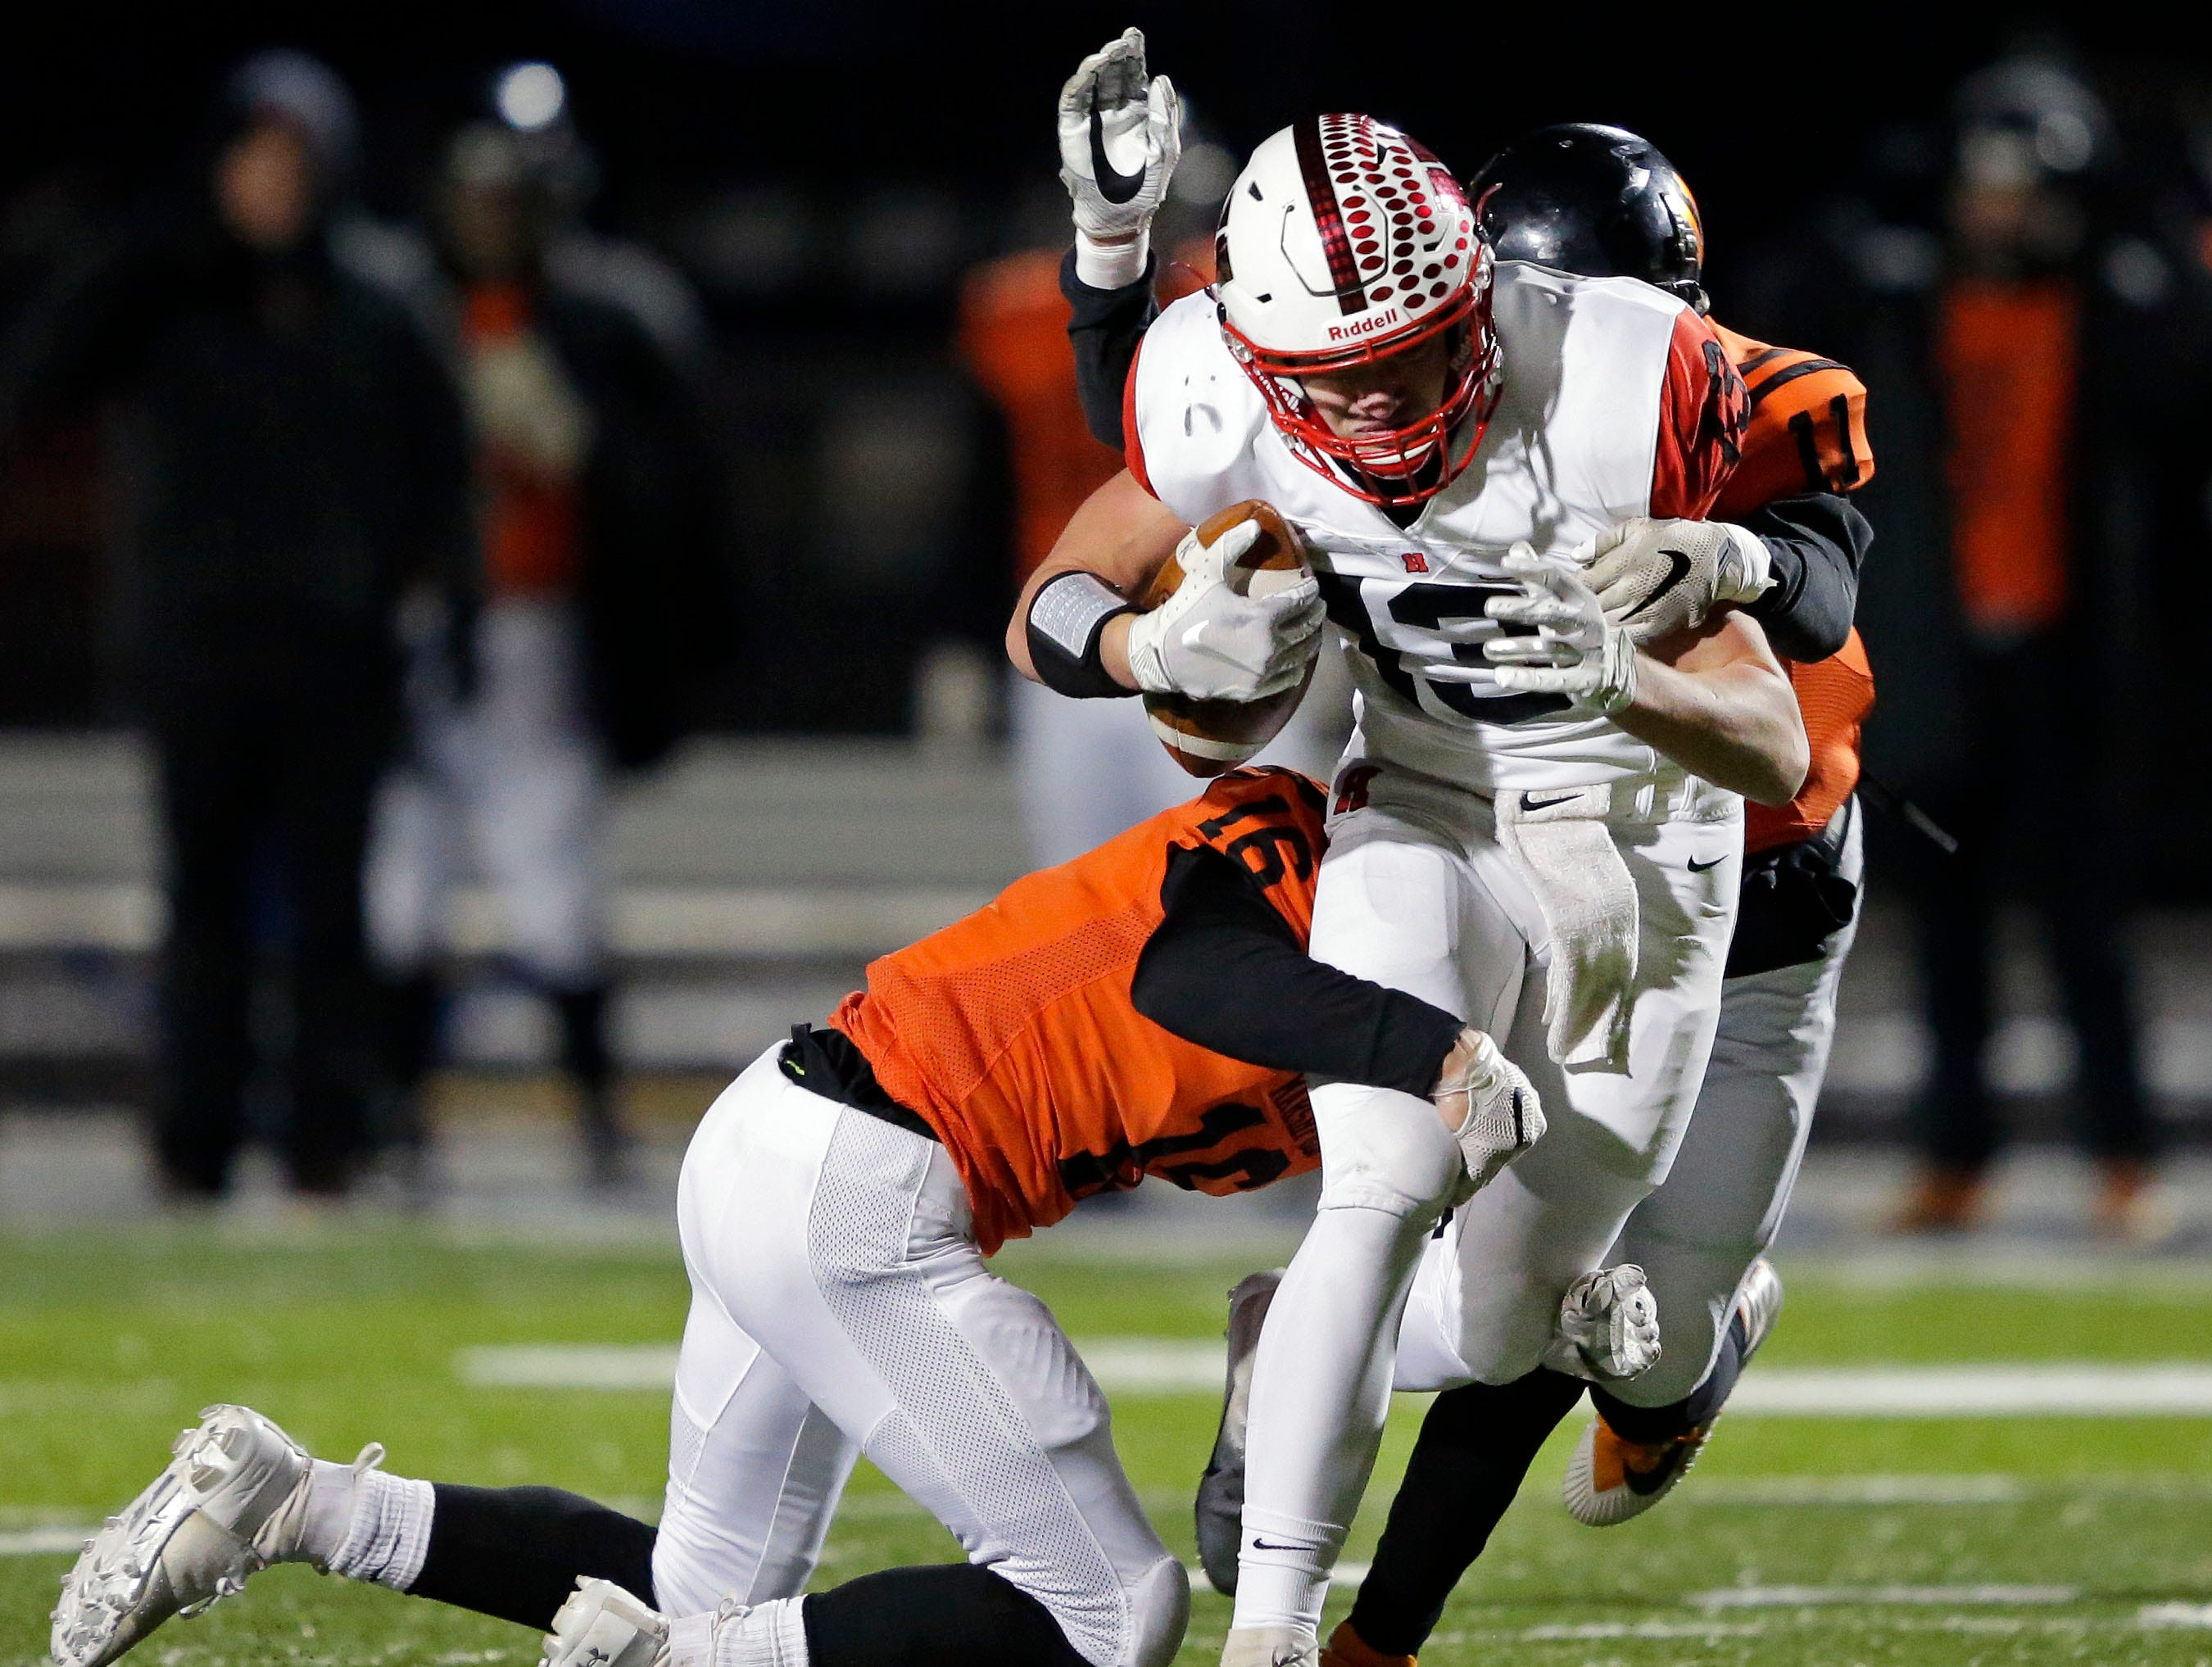 Howie Newbauer of Homestead is tackled by Bently Schwanebeck-Ostermann (16) and Joey Goettl (11) of Marshfield in a WIAA Division 2 state semifinal football game Friday, November 9, 2018, at Calder Stadium in Menasha, Wis.Ron Page/USA TODAY NETWORK-Wisconsin